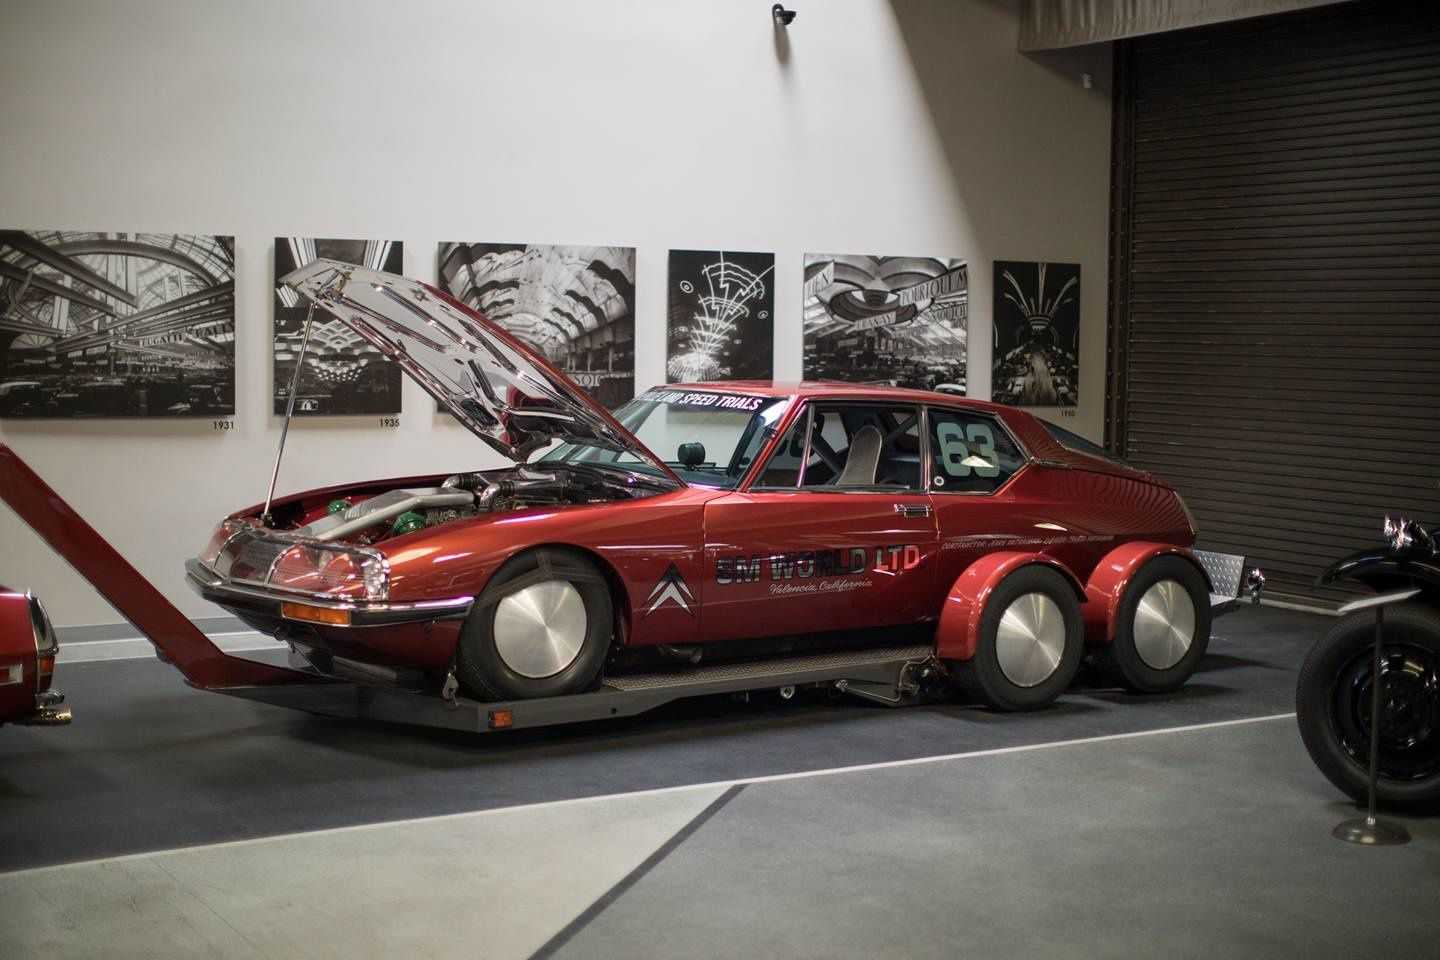 MULLIN MUSEUM WELCOMES THE FASTEST CITROEN SM - CALIFORNIA USA